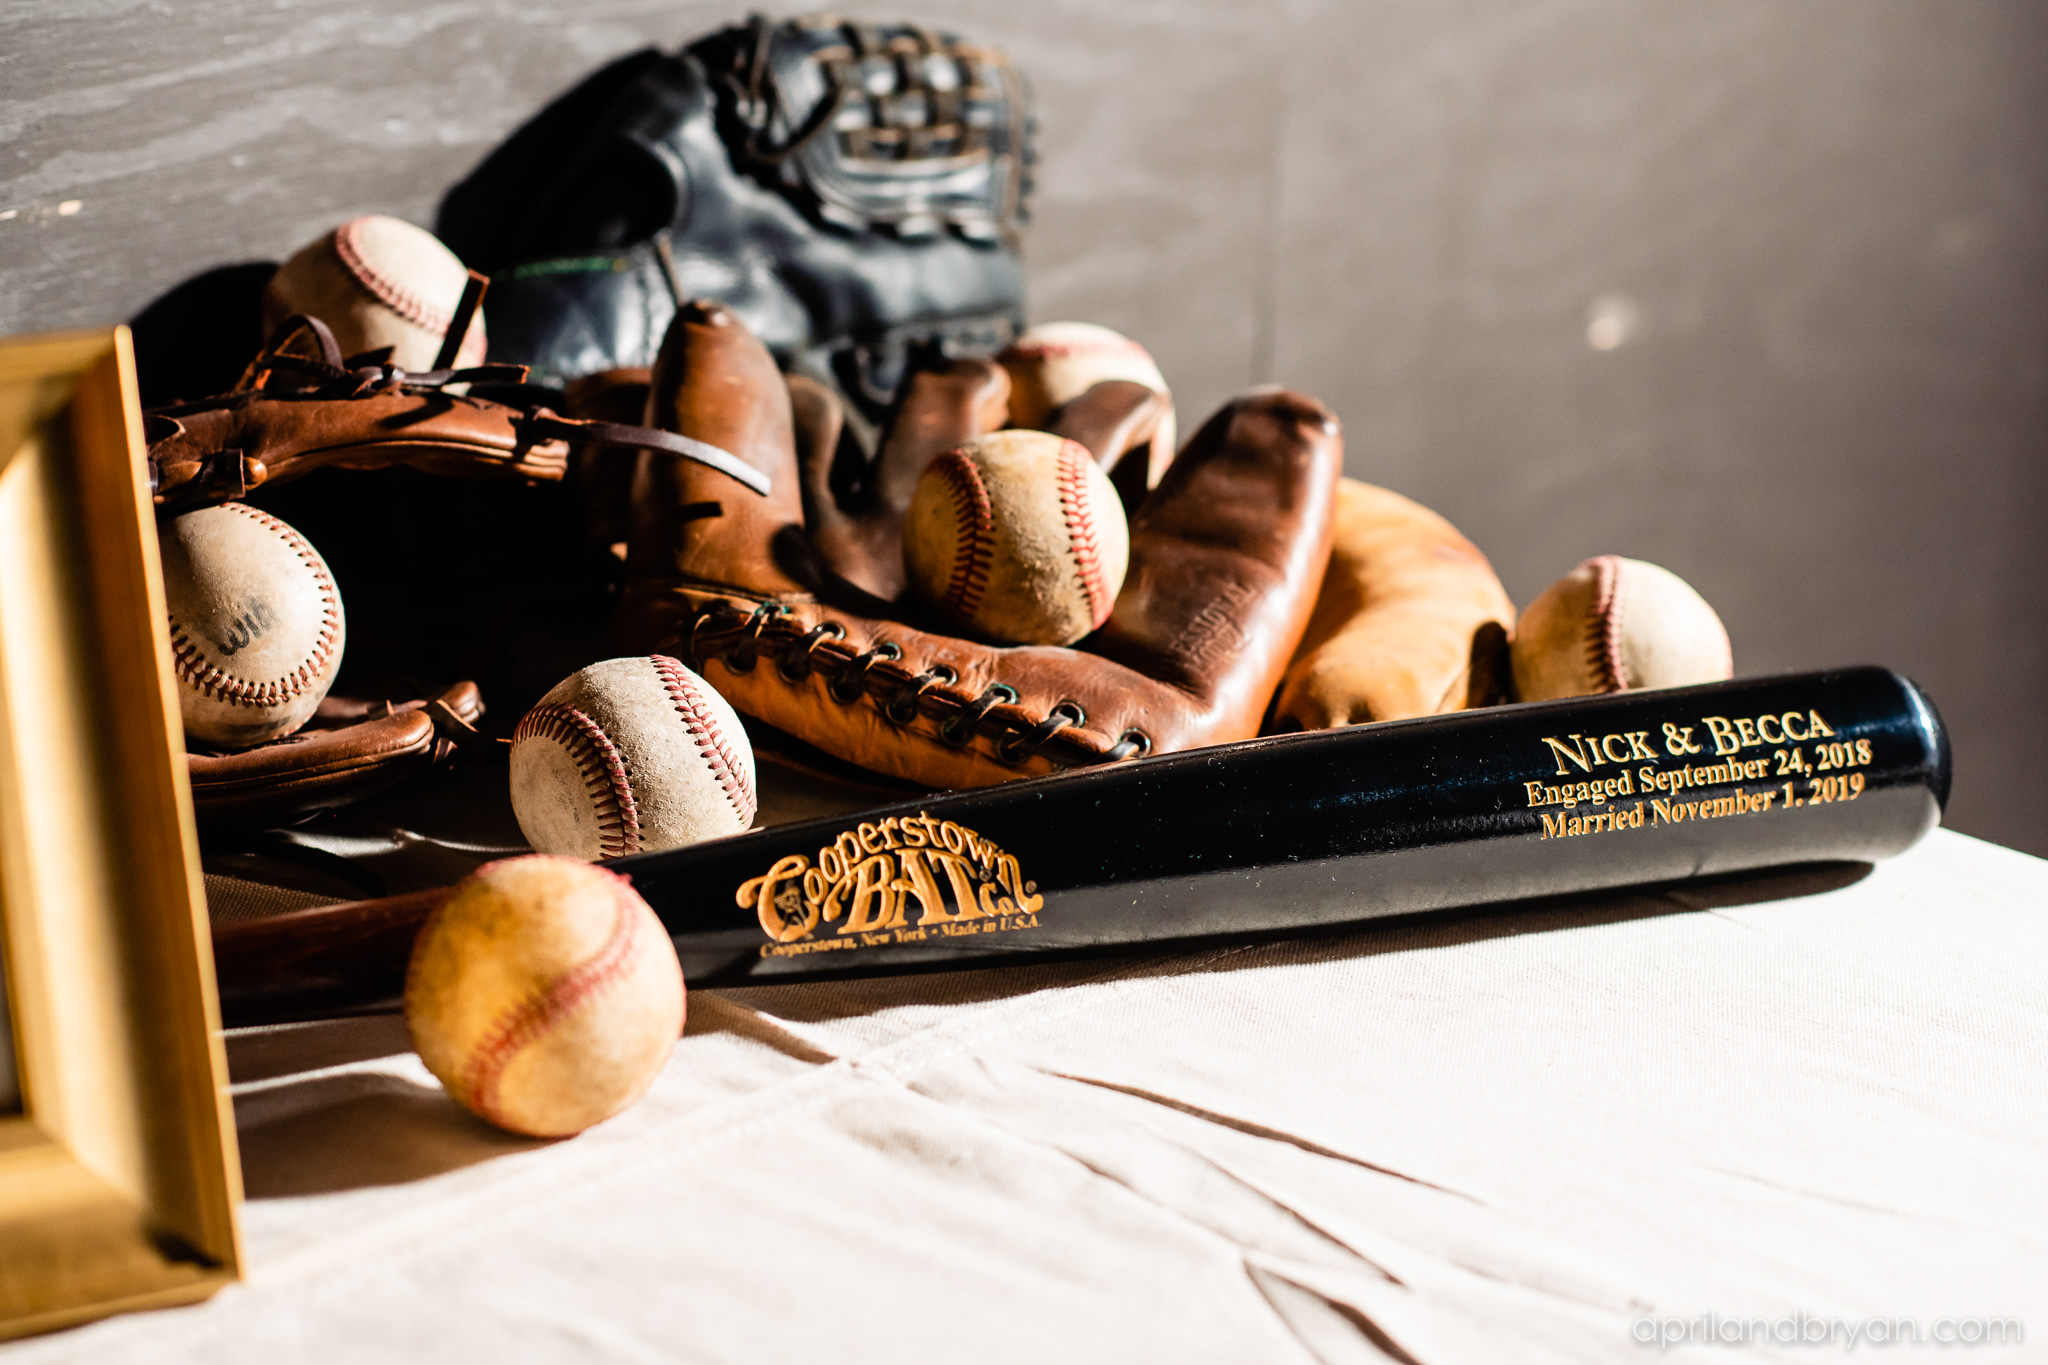 Cooperstown Bat Co. played a part in the couple's special day with a custom engraved bat for their special day. Nicholas and Rebecca Fasnacht tie the not at Tellus360 on November 1, 2019. Captured by April & Bryan Photography and featured on Dream Weddings.